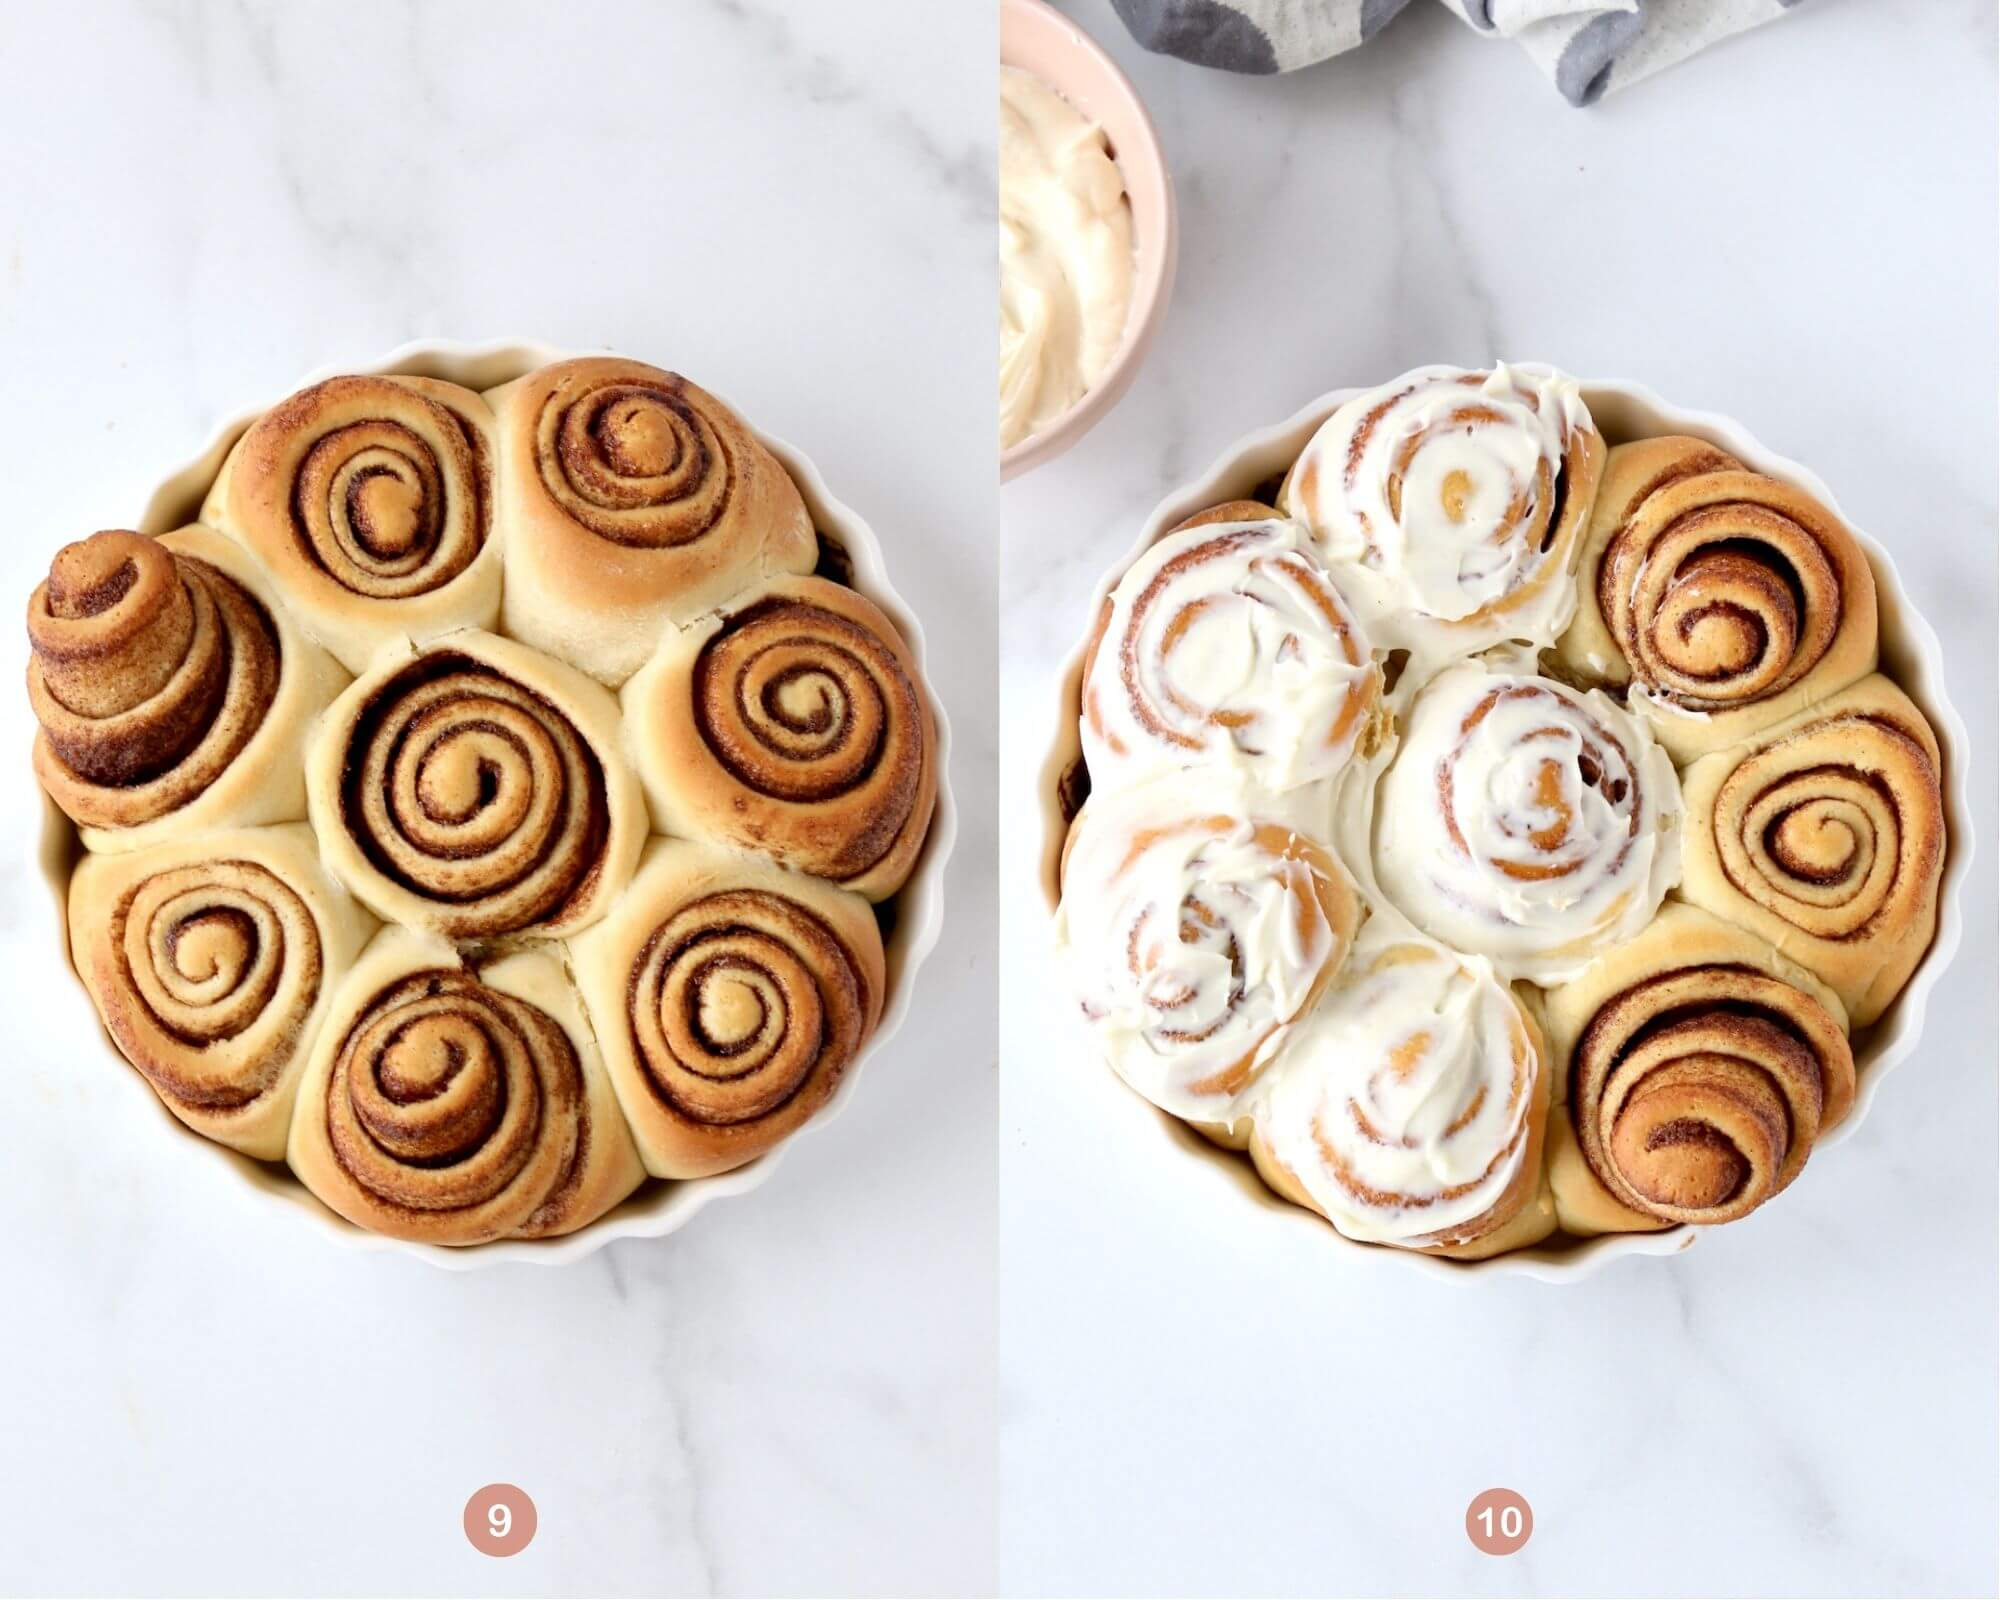 baked cinnamon rolls and cinnamon rolls with cream cheese spread on top